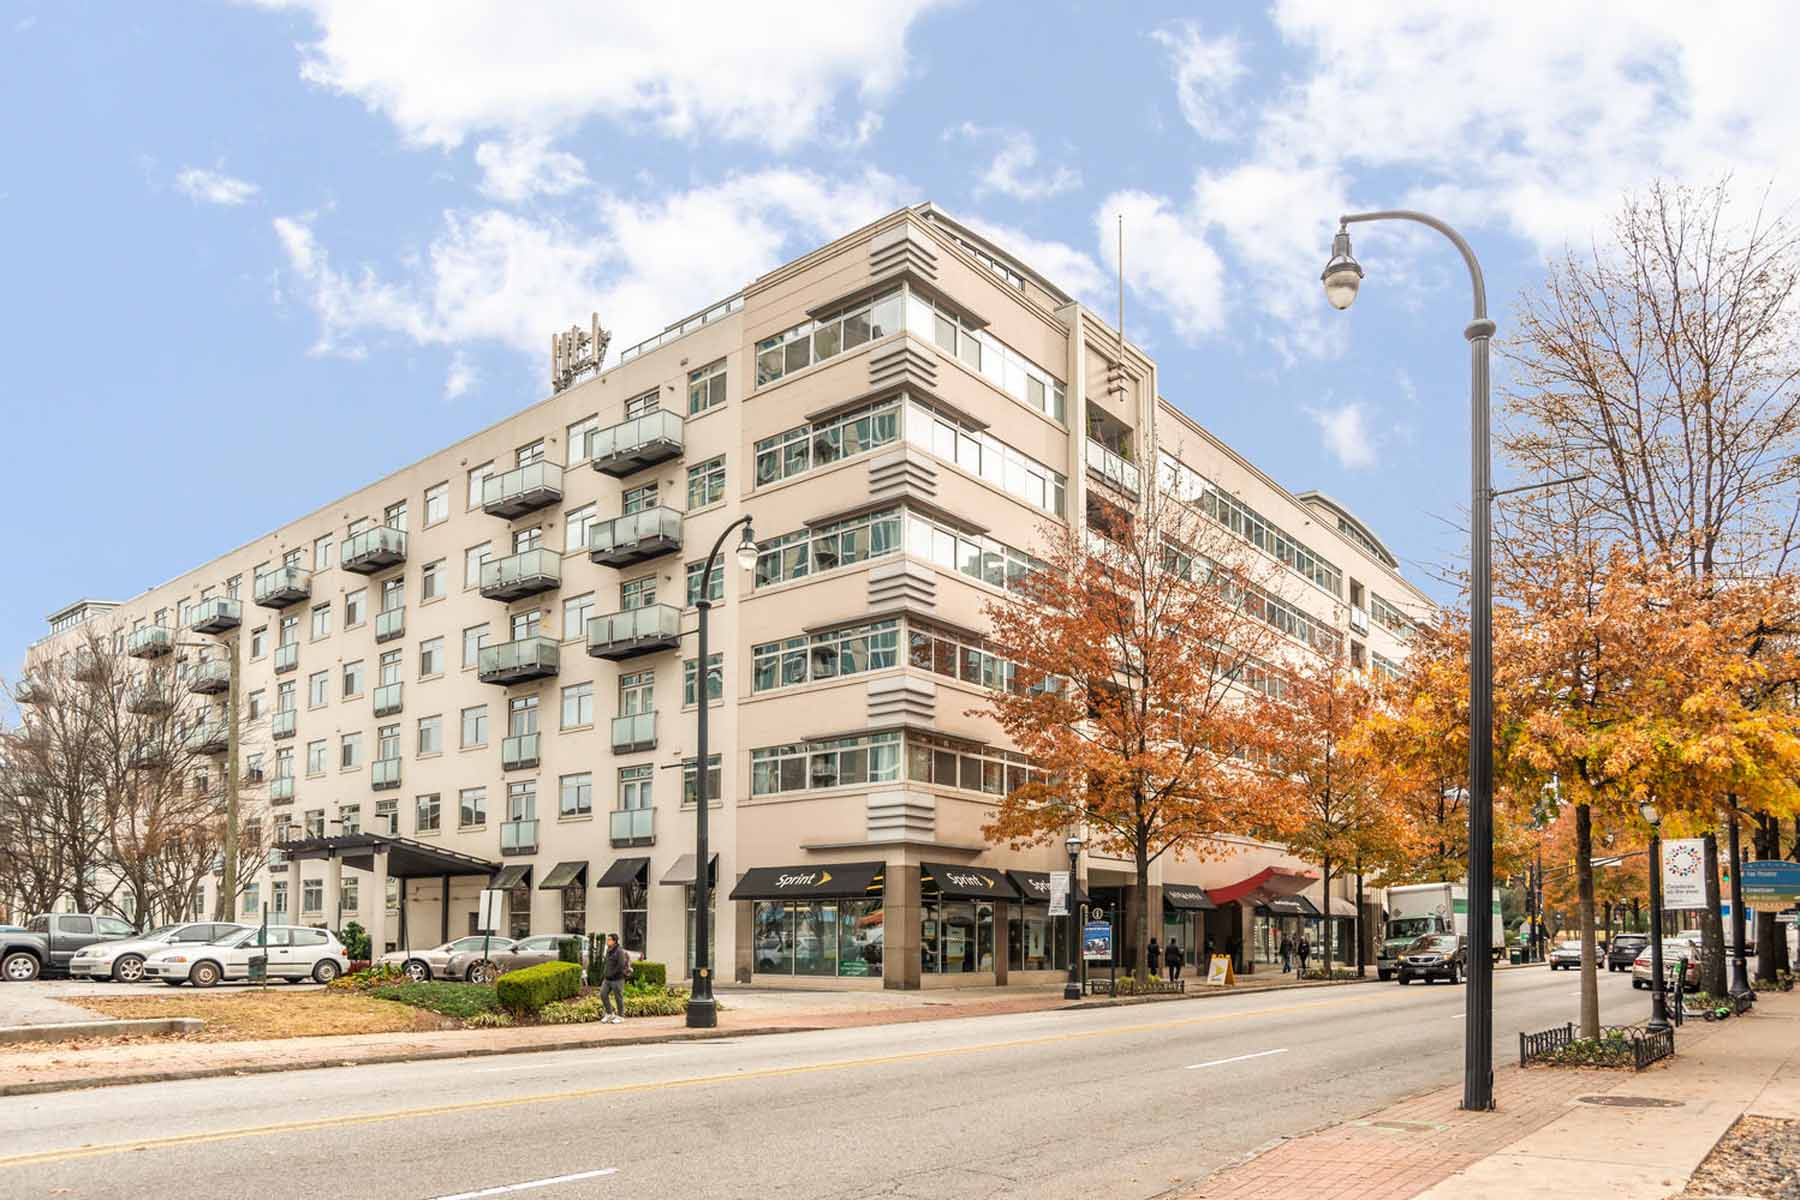 Condominium for Sale at End Unit Loft Style Condo in Heart of Midtown with Unobstructed Views 805 Peachtree St 518 Atlanta, Georgia 30309 United States